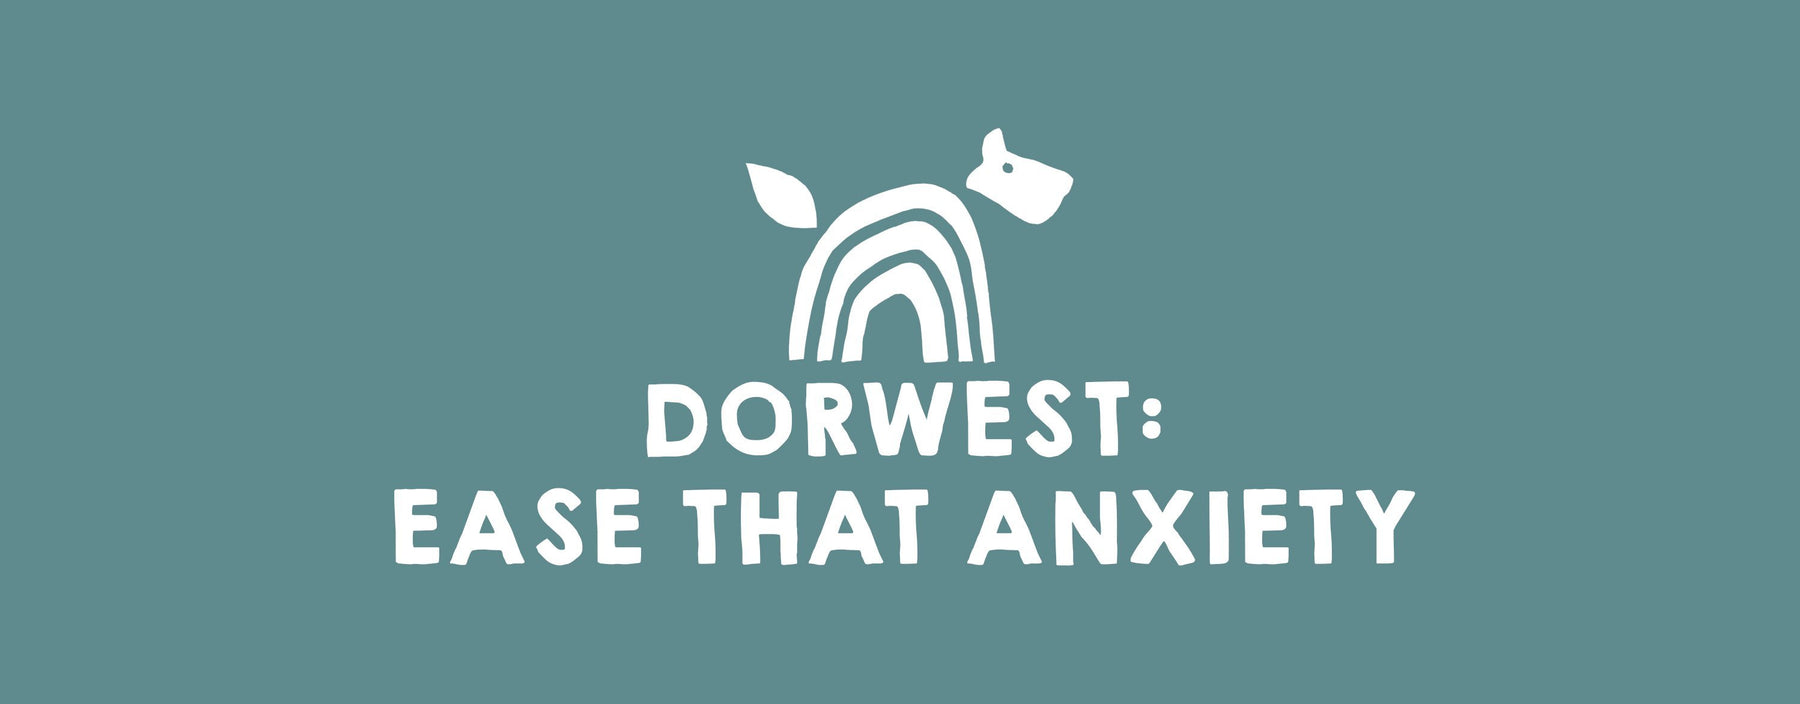 Dorwest: Ease That Anxiety